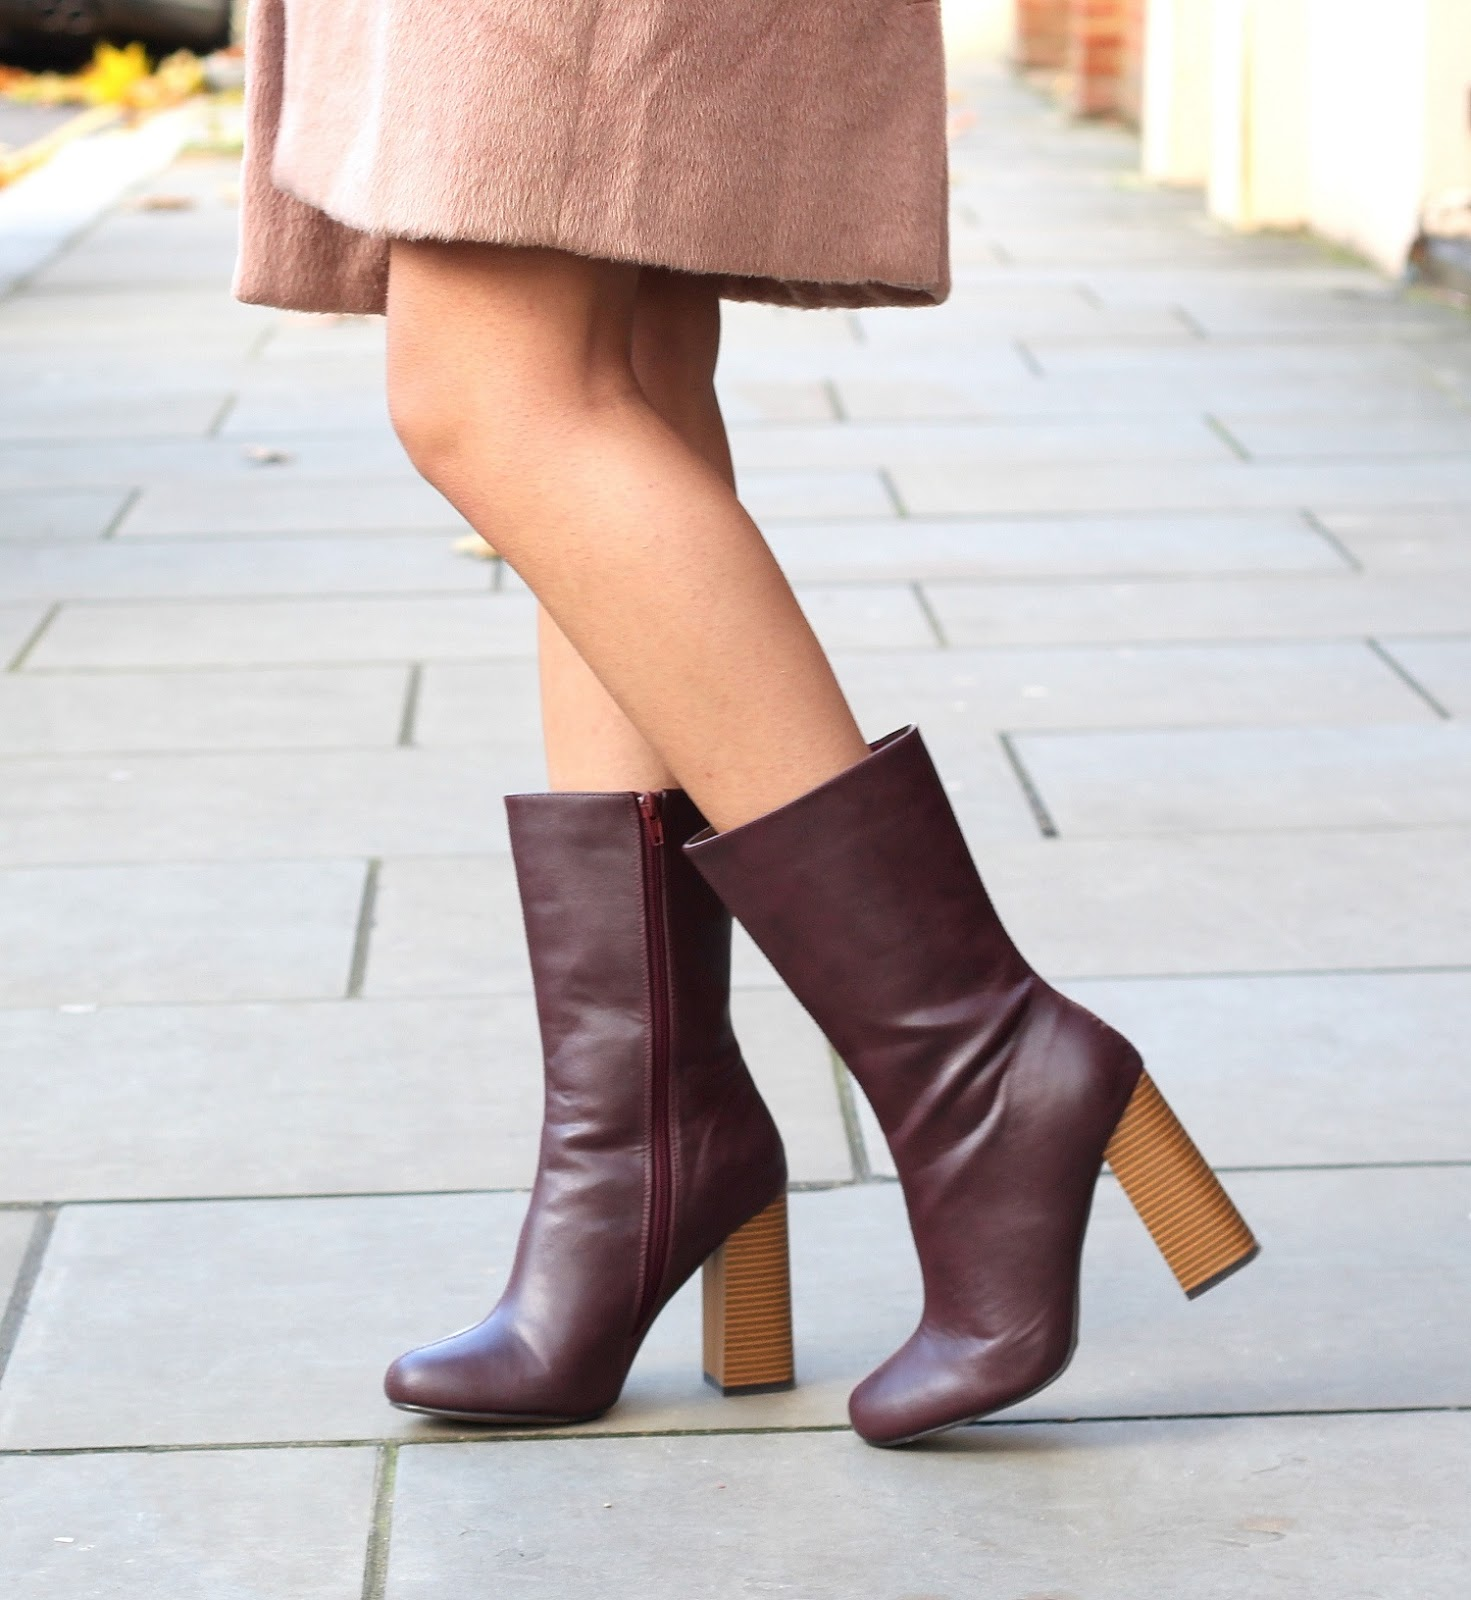 peexo fashion blogger wearing la moda boots